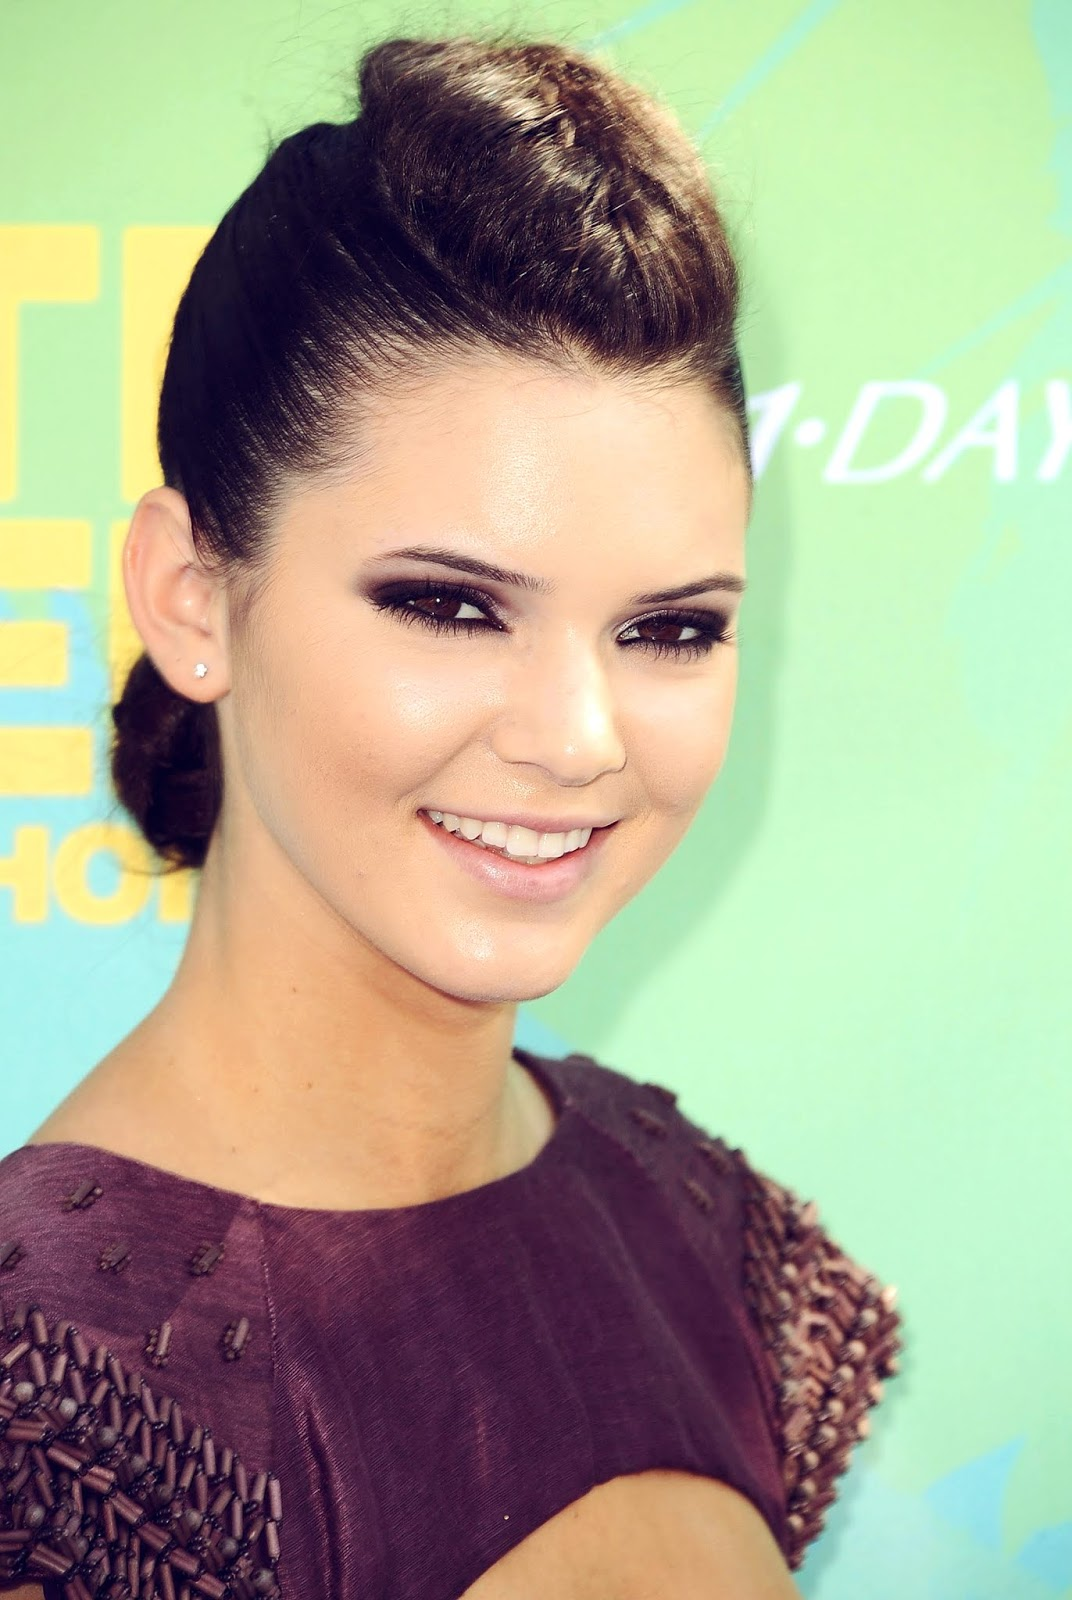 14- Teen Choice Awards in August 11, 2011